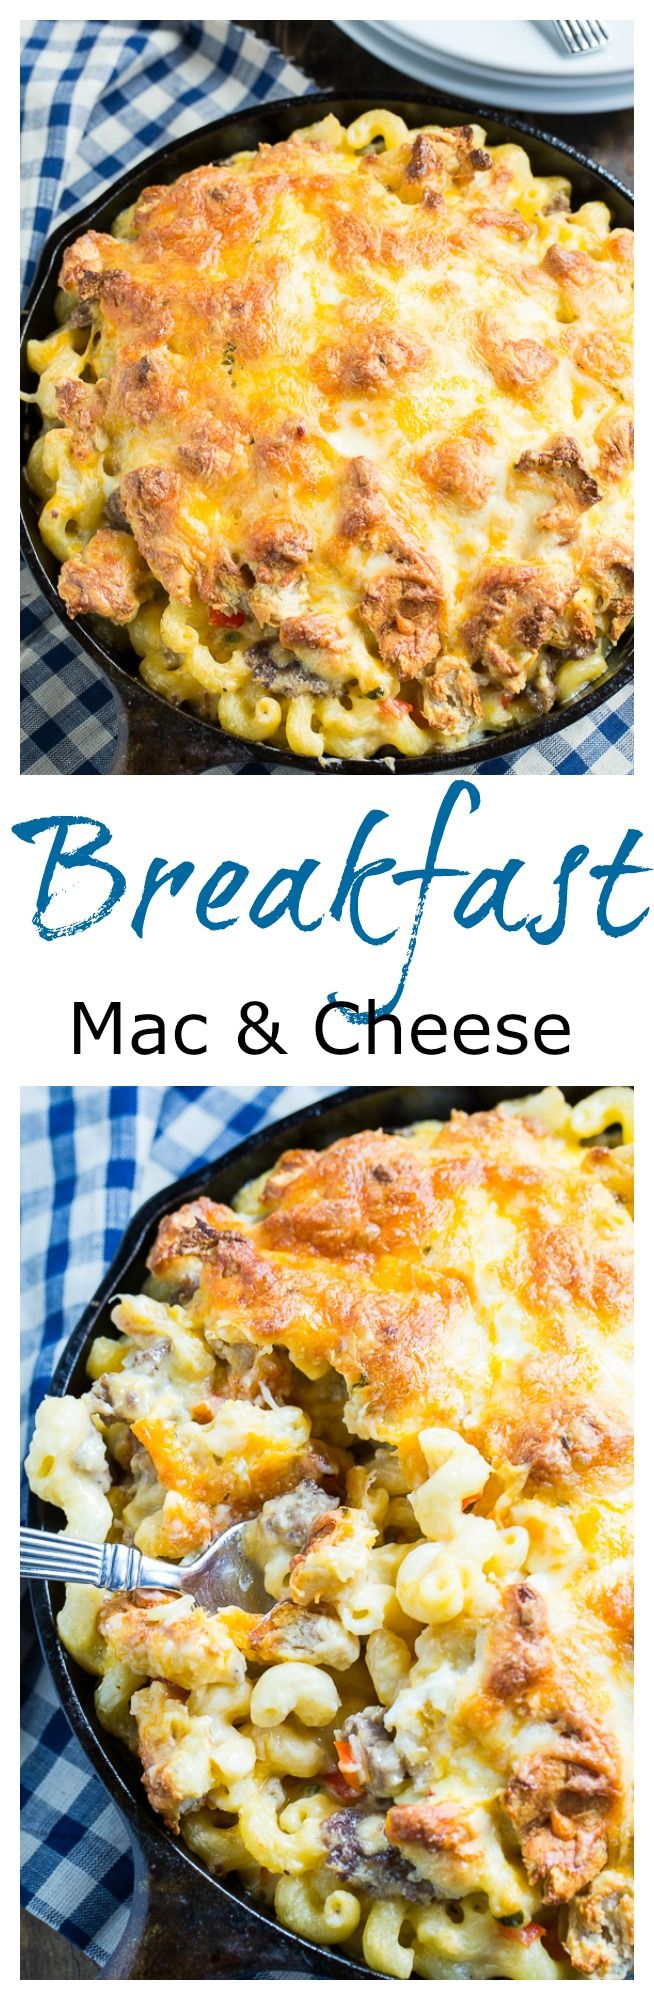 Who says you can't eat mac and cheese for breakfast? This one has tons of sausage and a crumbled biscuit topping!